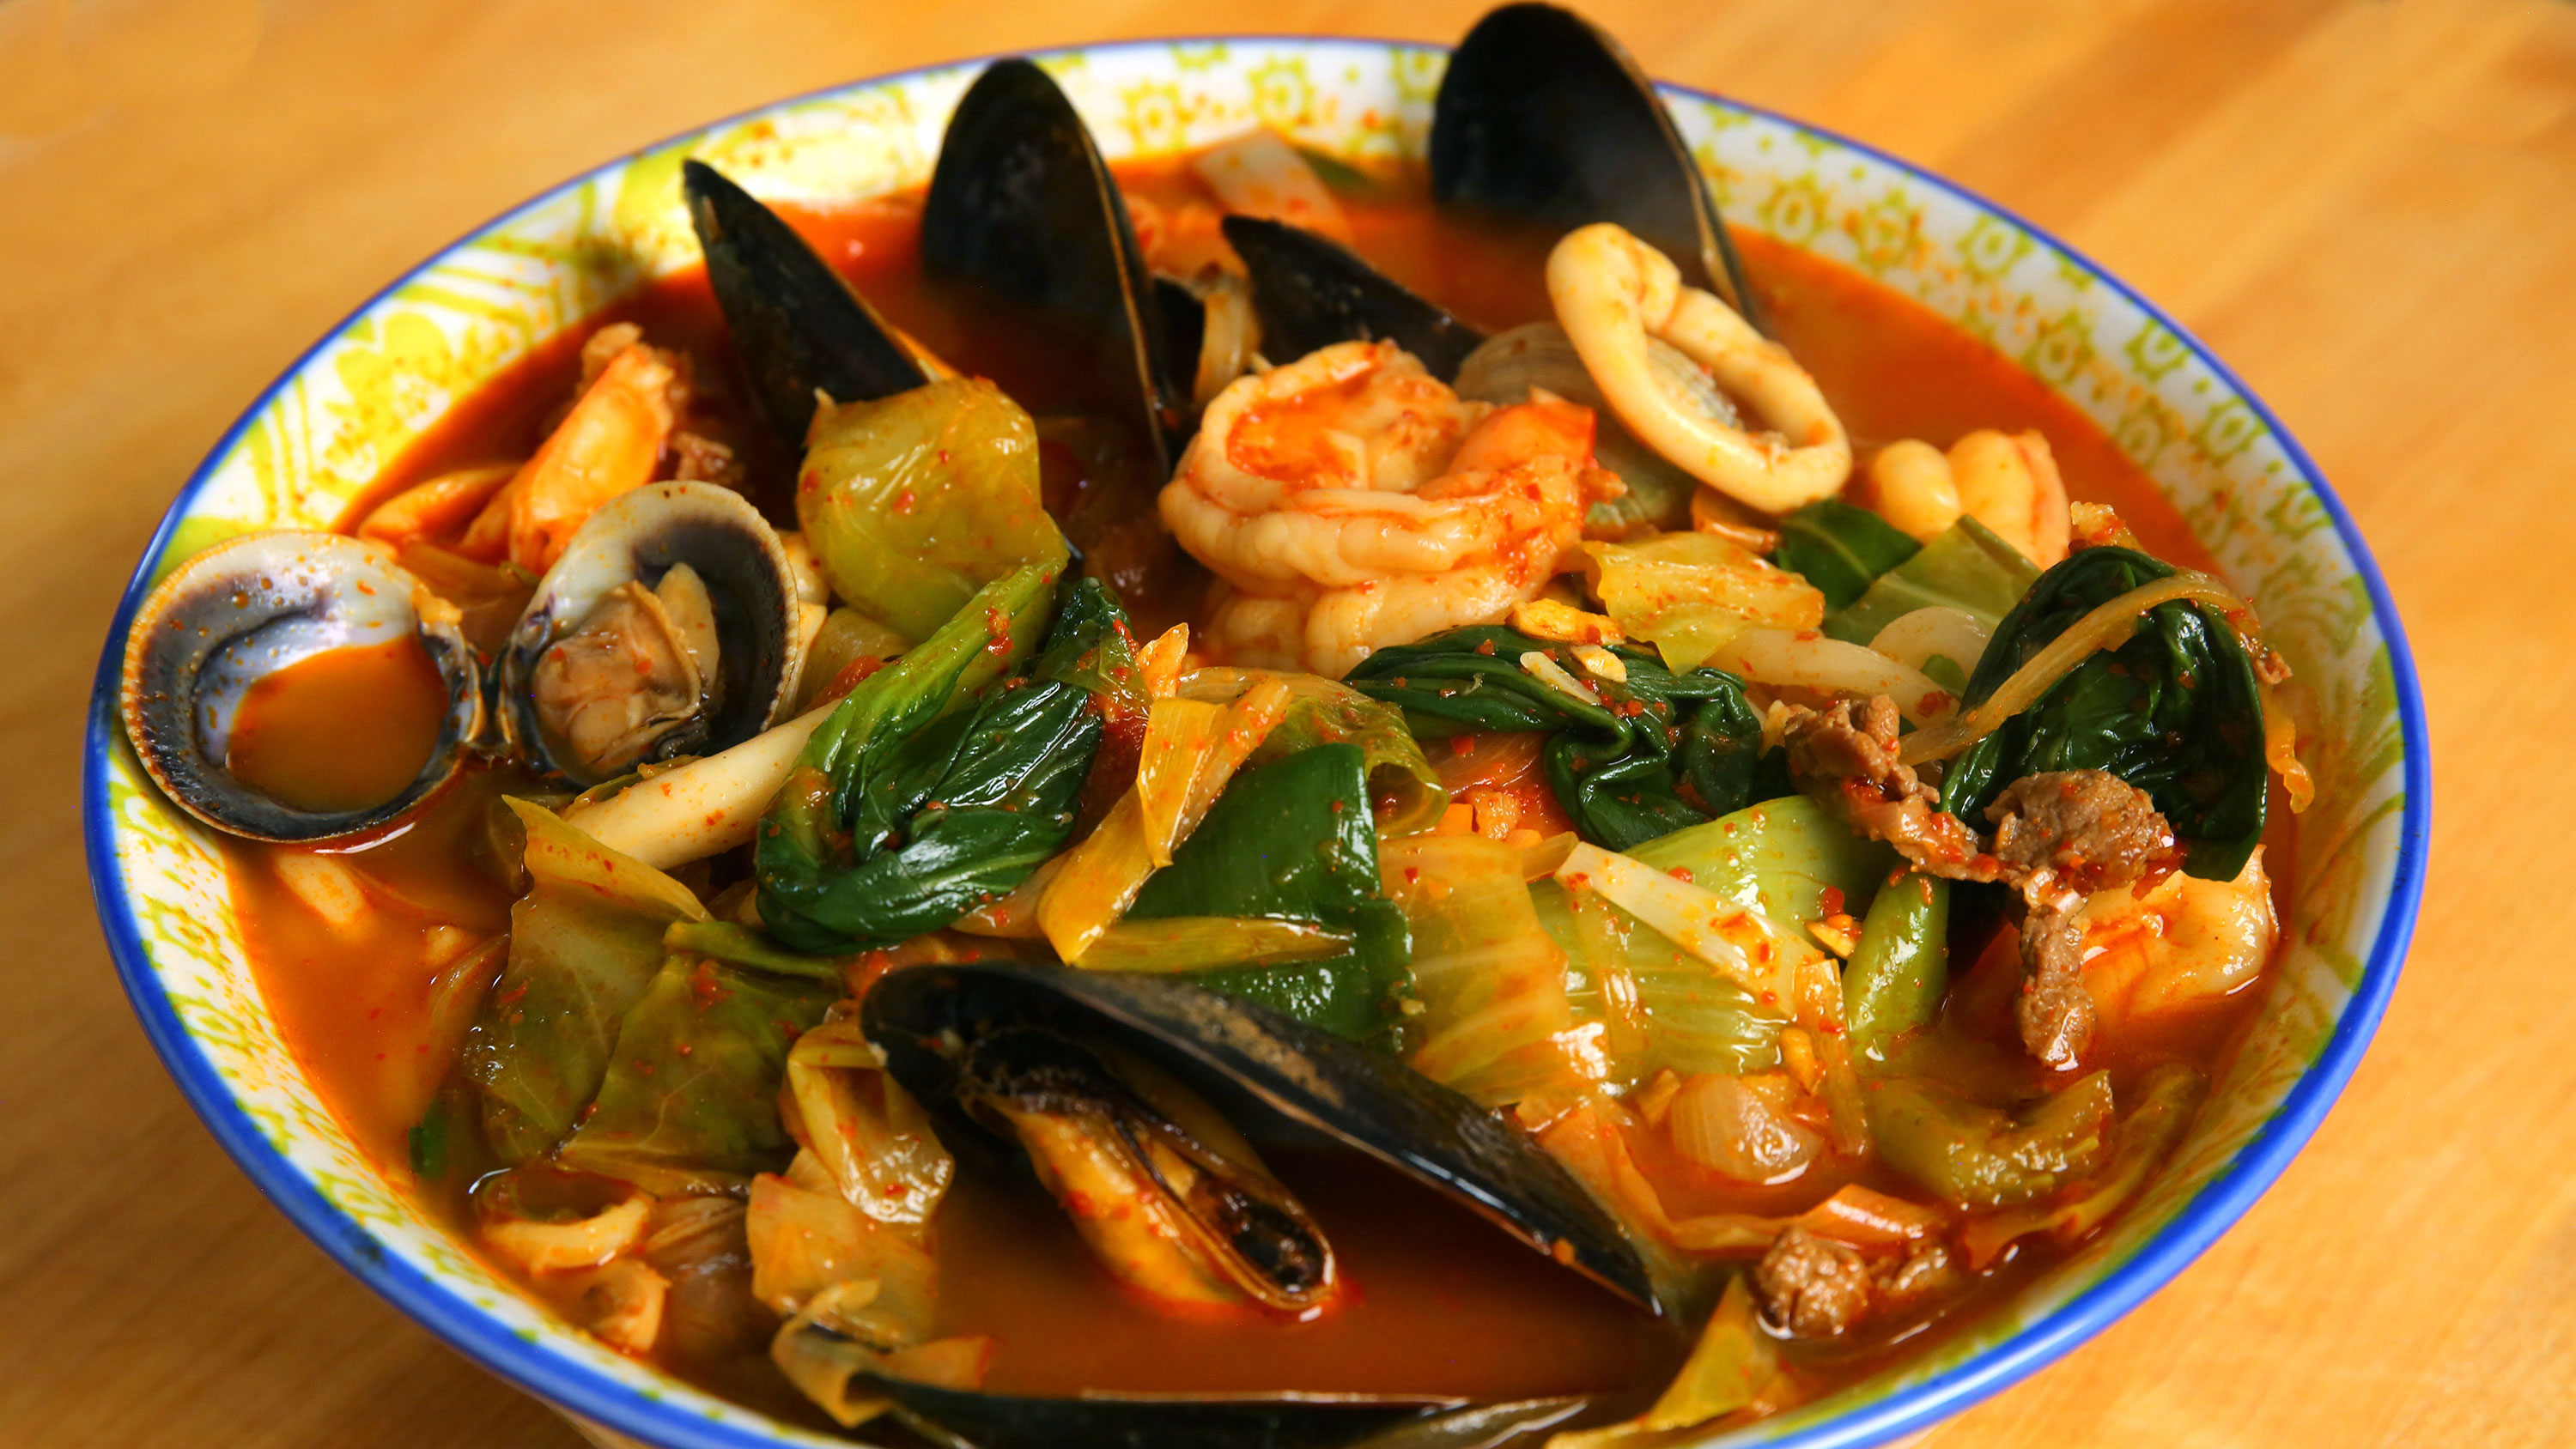 Jjamppong: Spicy Korean Seafood Noodle Soup